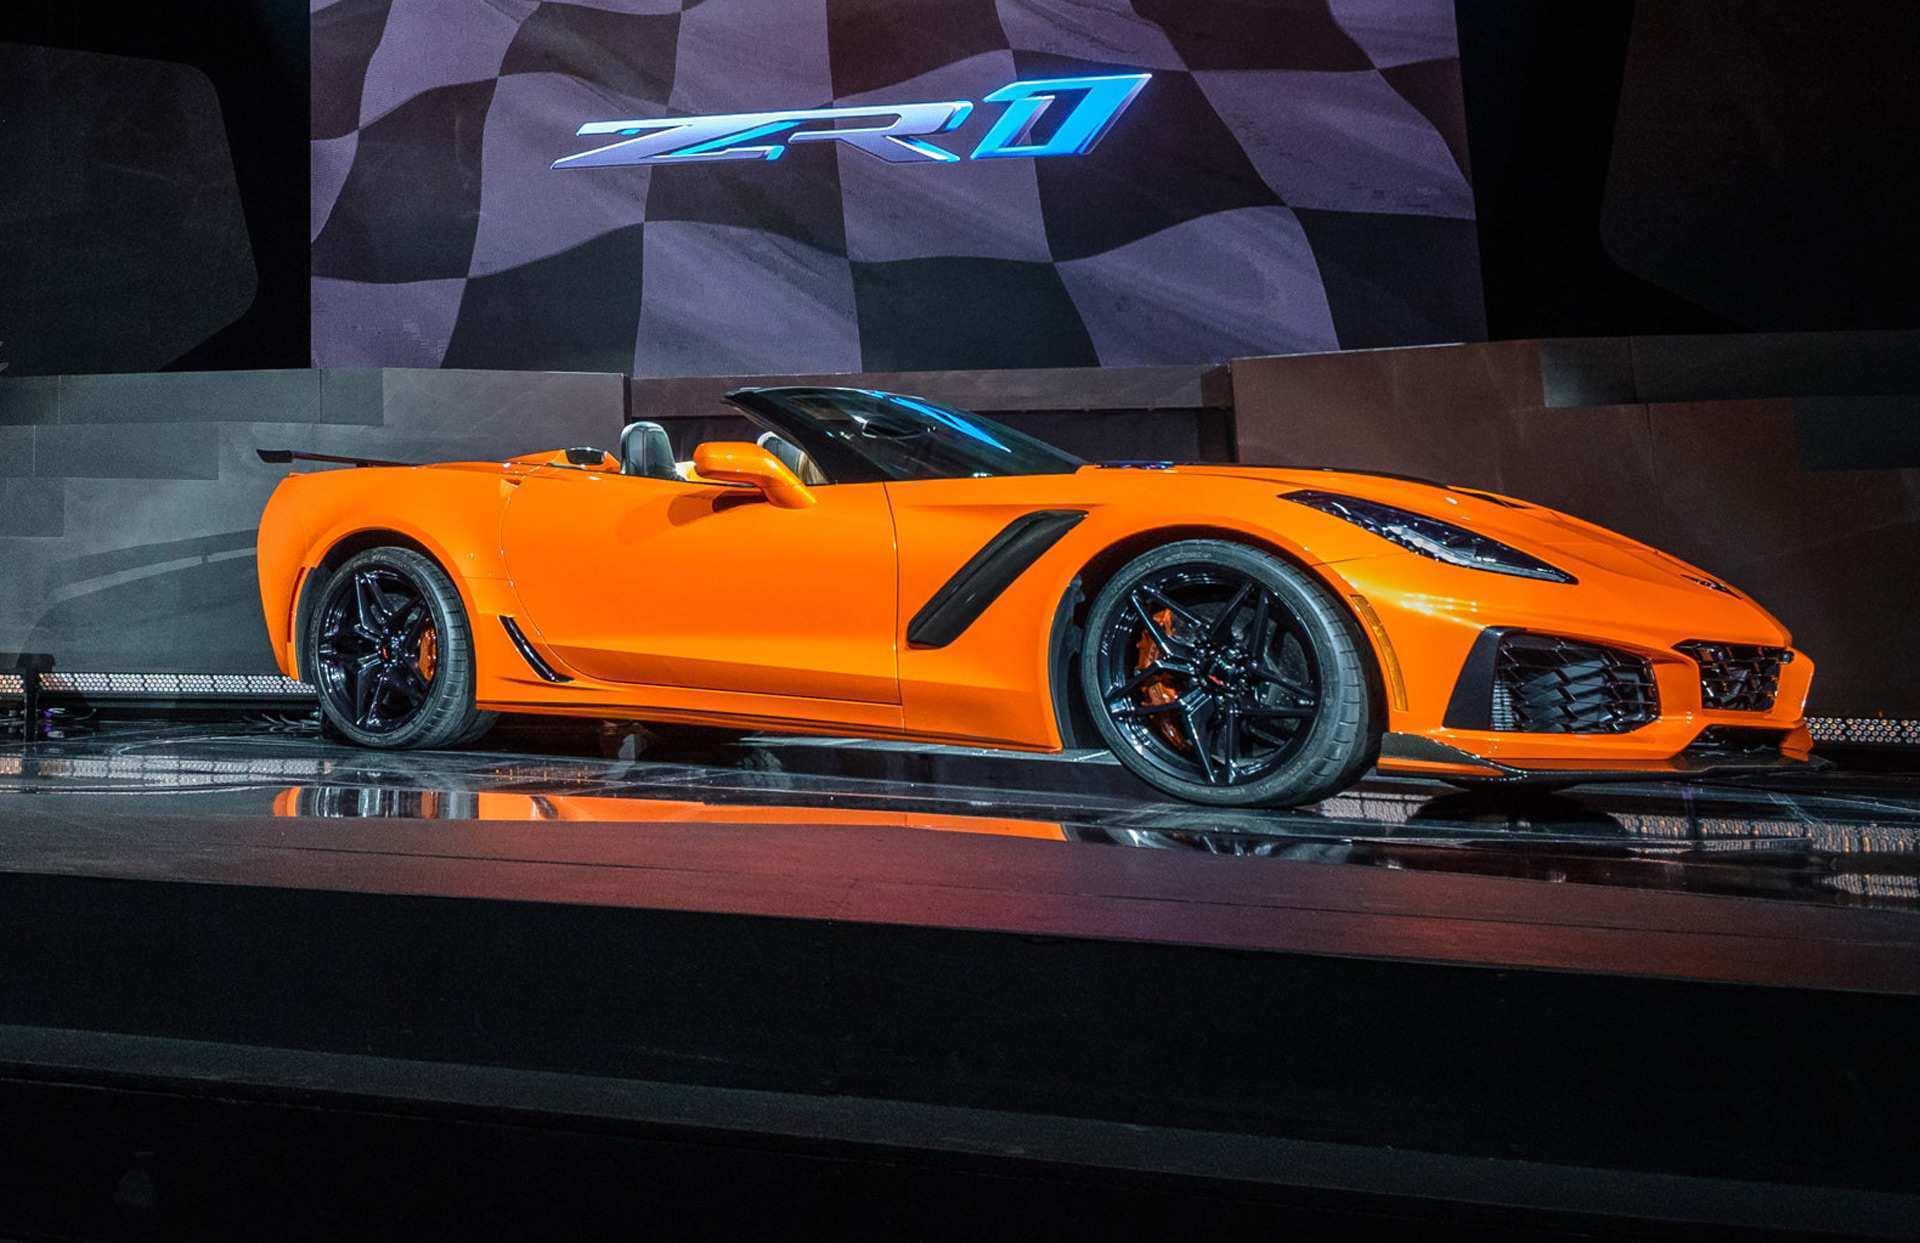 85 The Best 2019 Corvette ZR1 Wallpaper